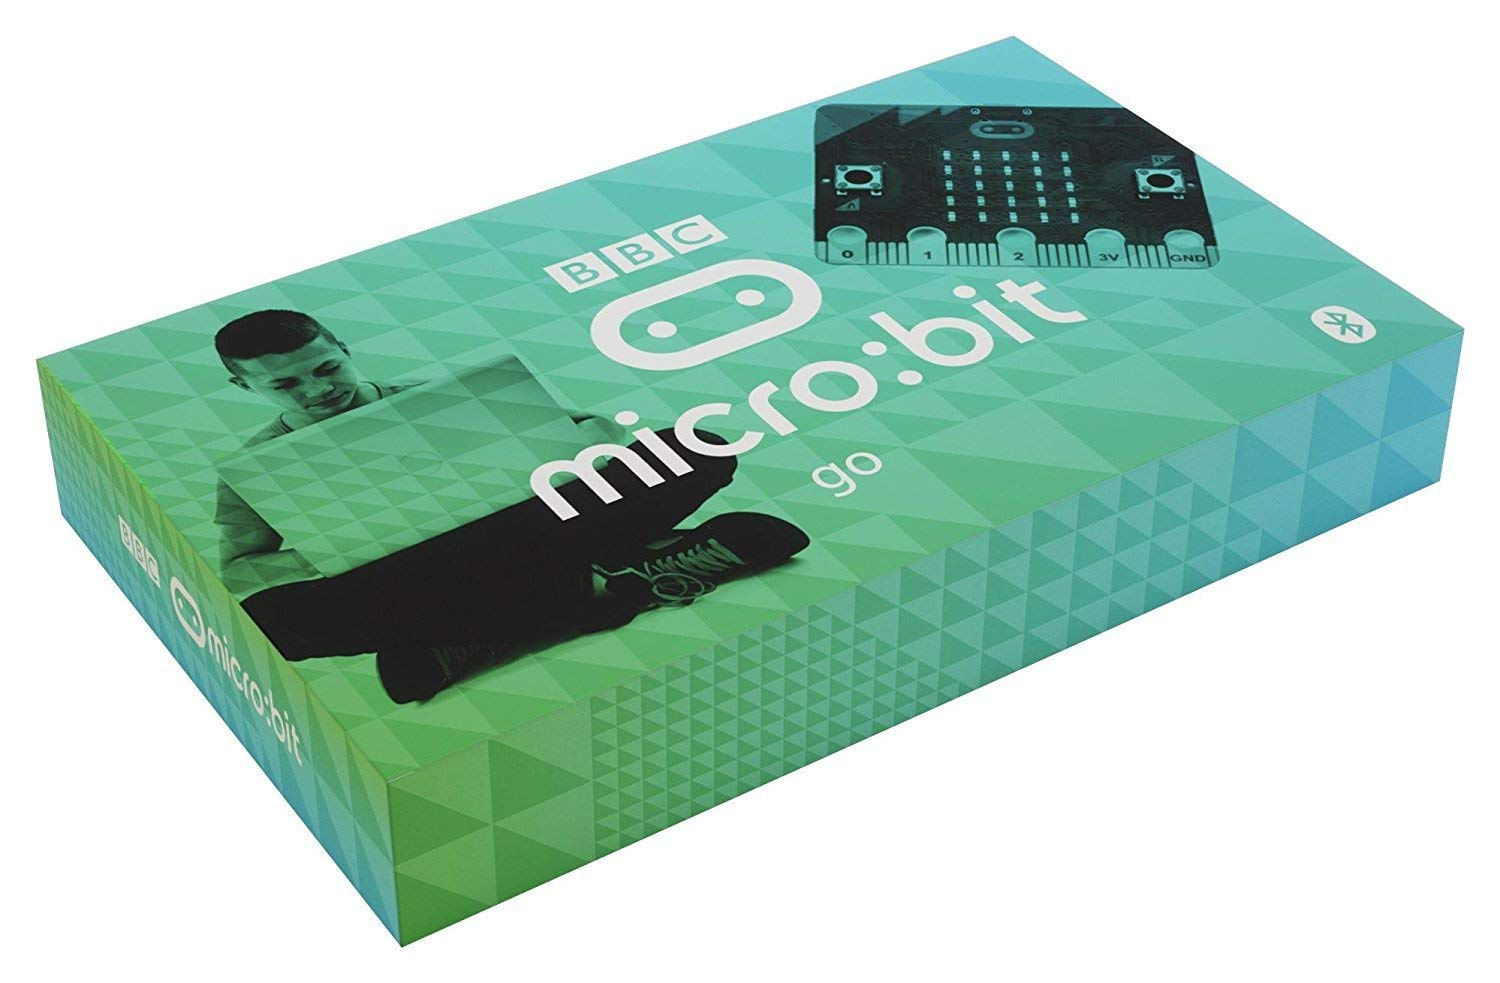 BBC micro:bit go kit, pocket-sized, programmable computer with cable and battery pack